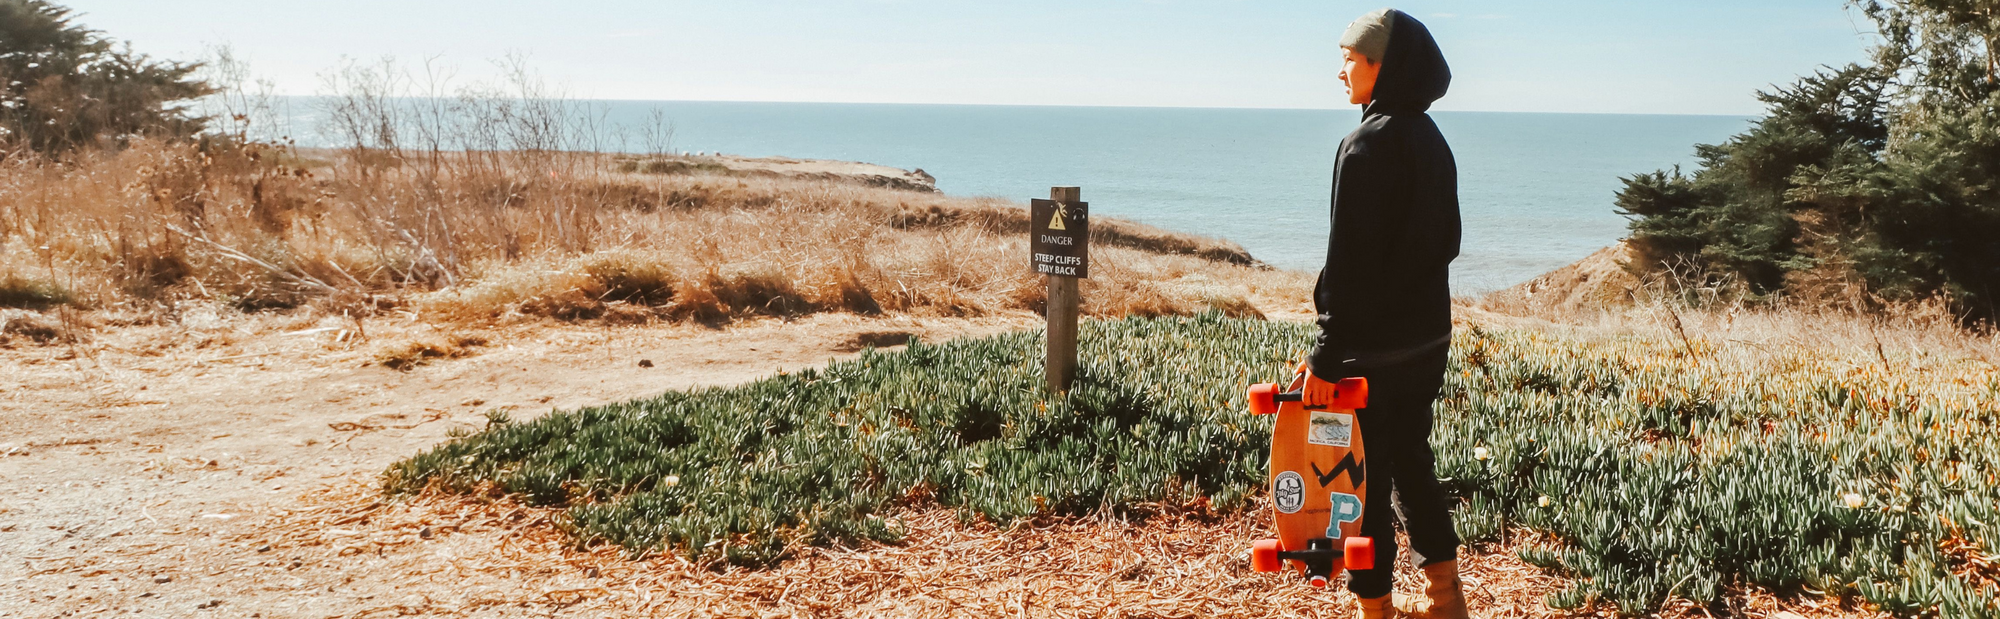 Girl With Eggboard Skateboard In Nature Overlooking The Ocean